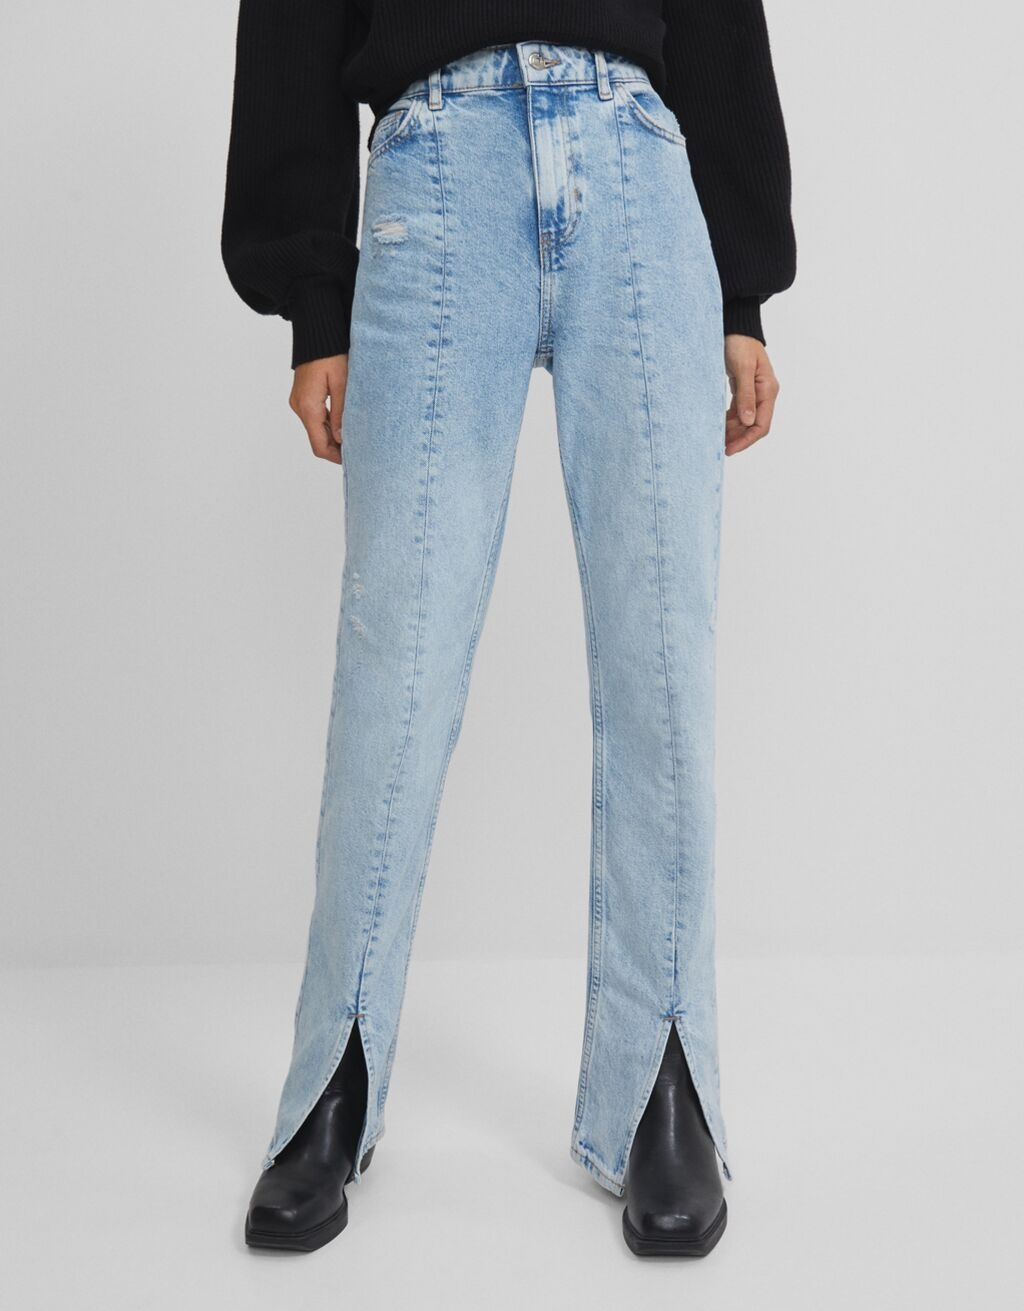 Jeans spacco orlo